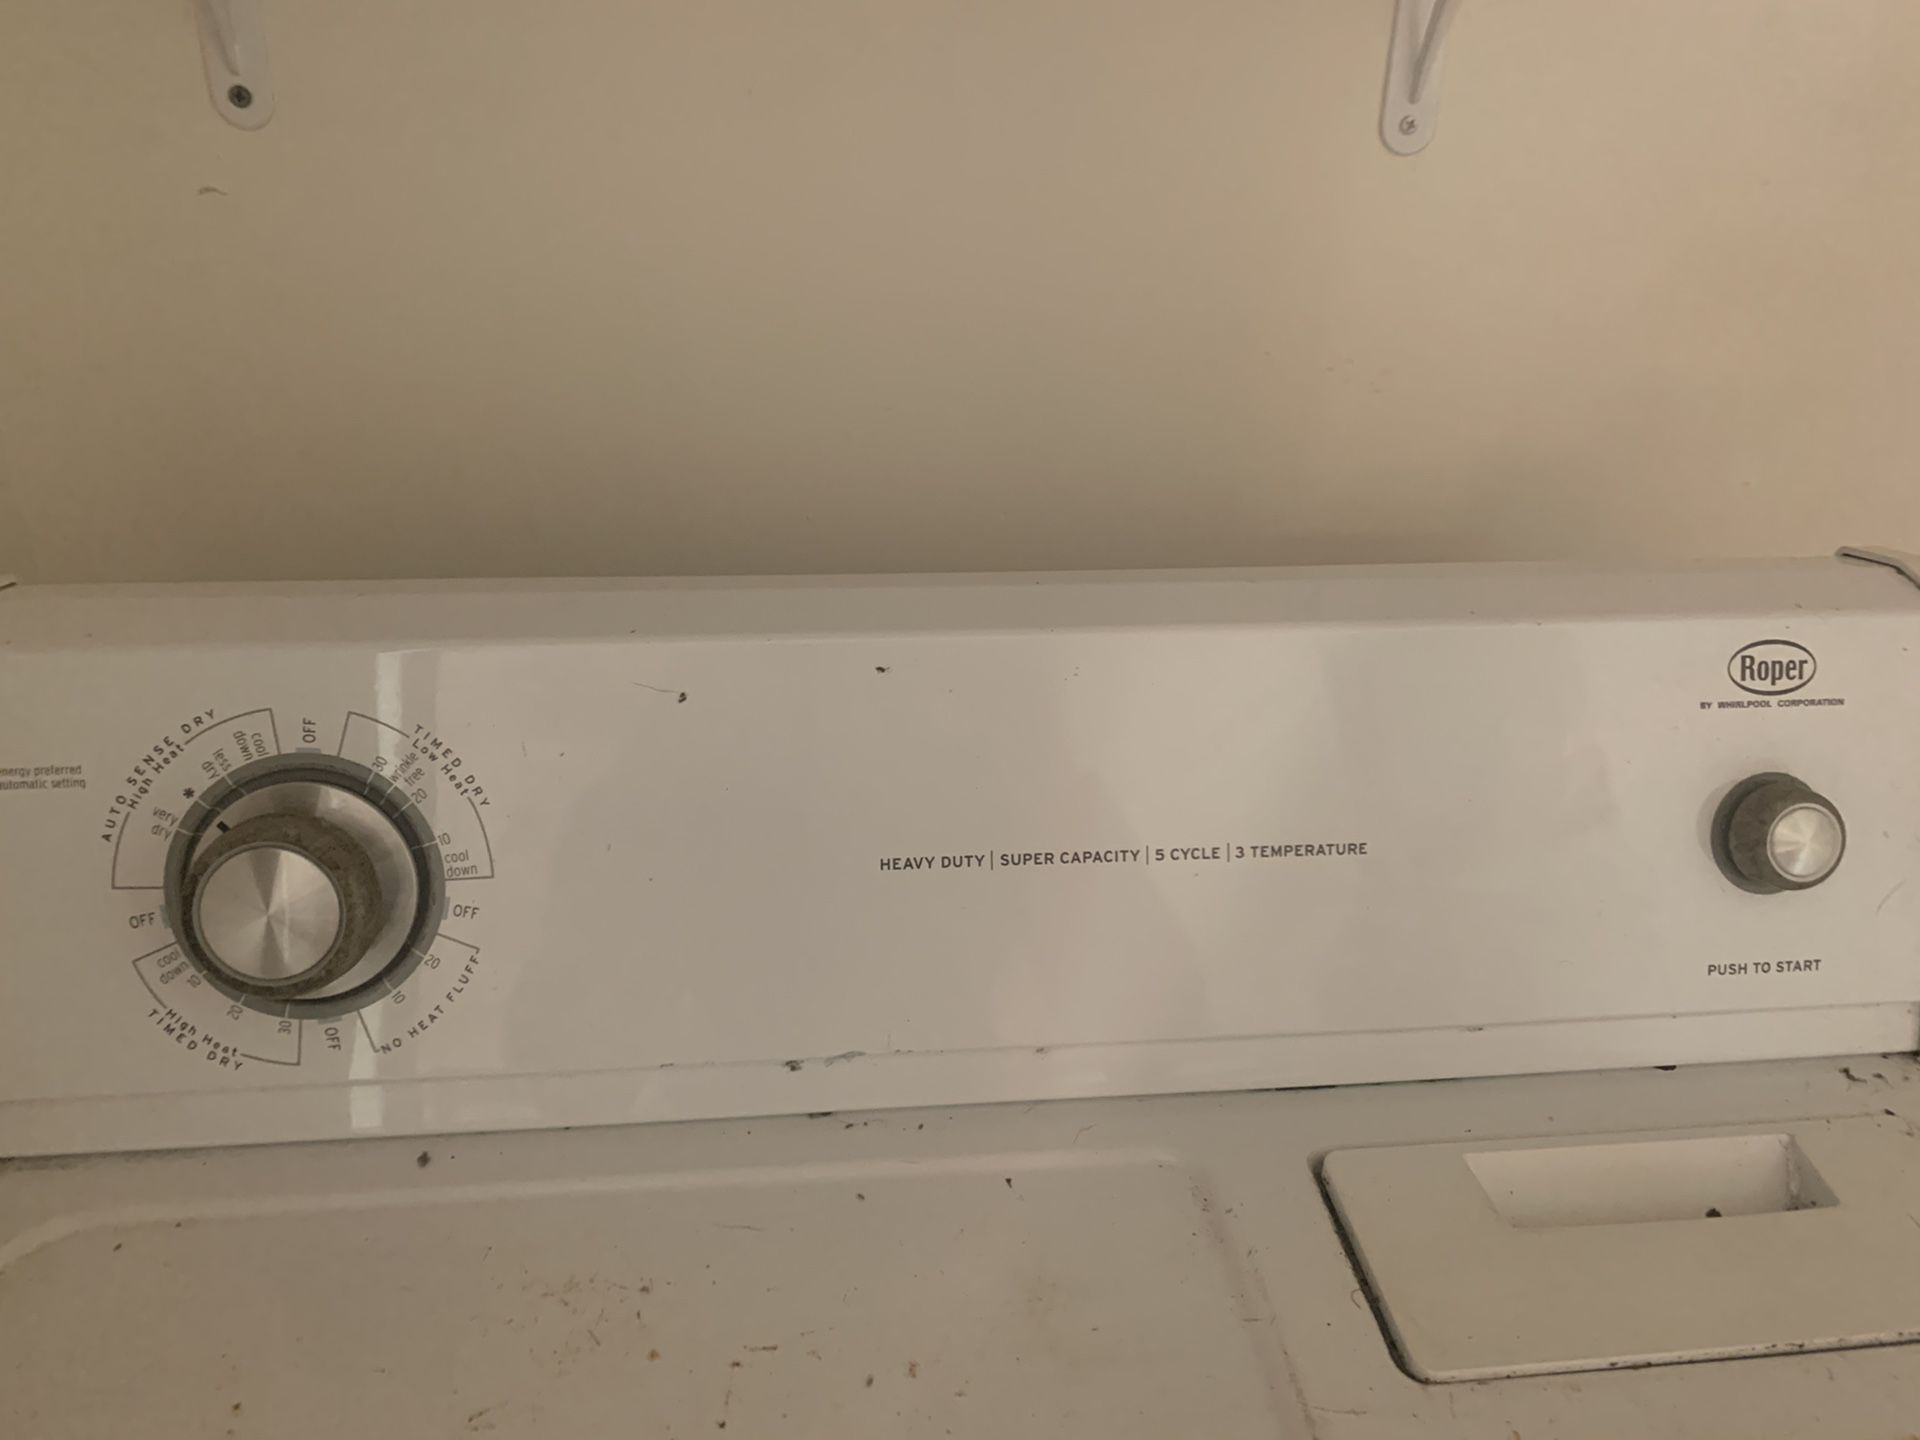 Perfectly functional dryer